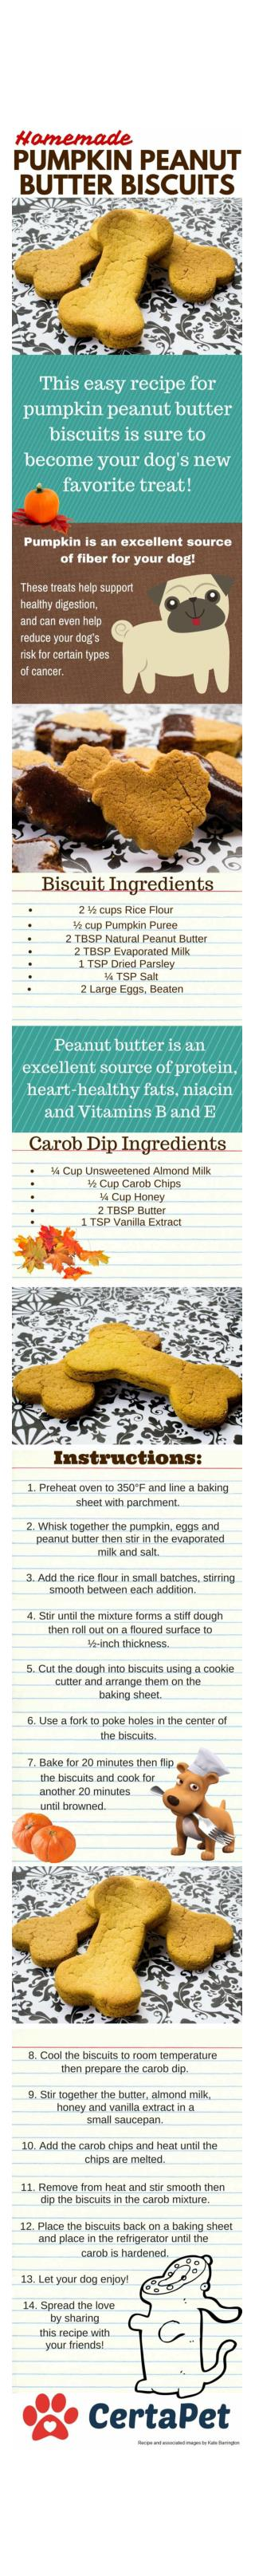 Homemade Pumpkin Peanut Butter Biscuits